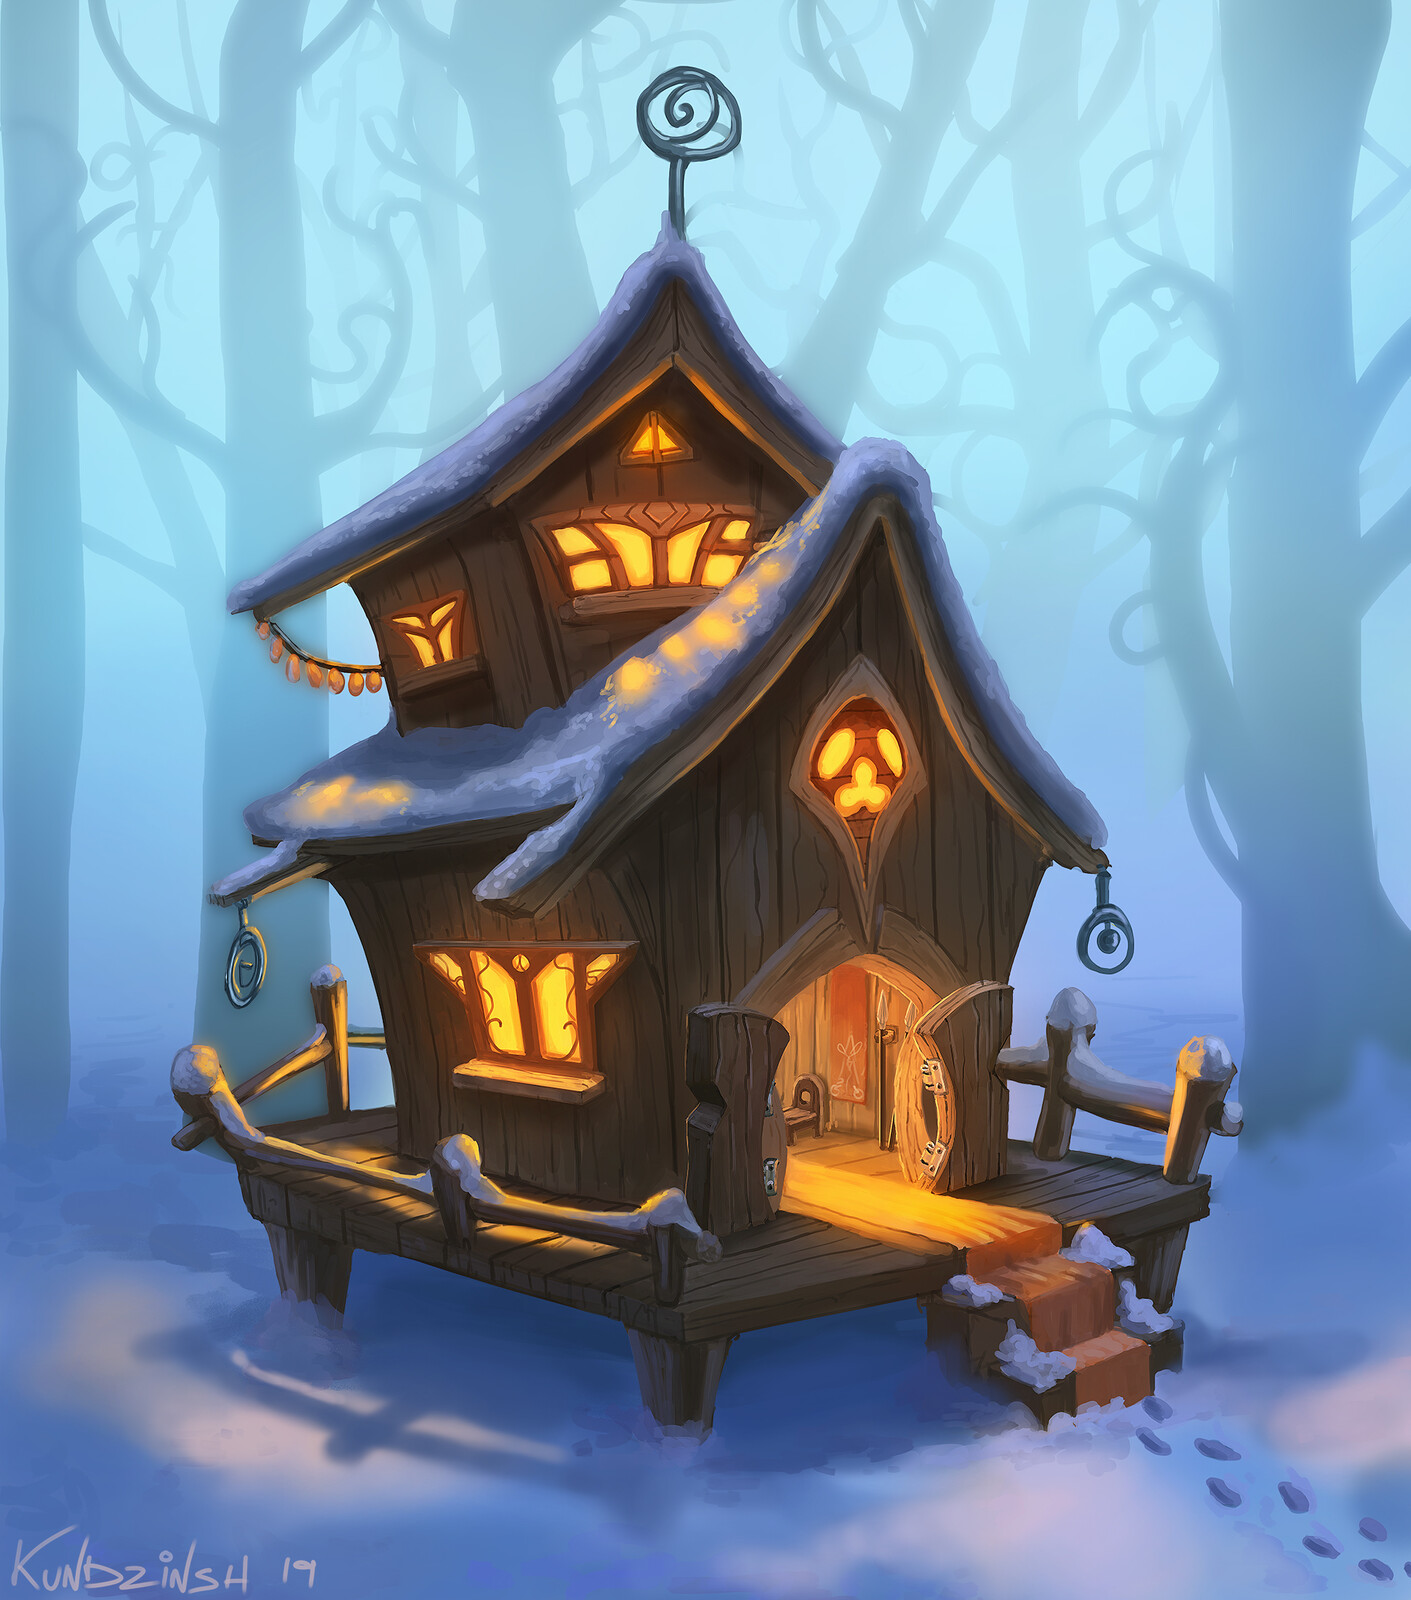 Stylized winter hut